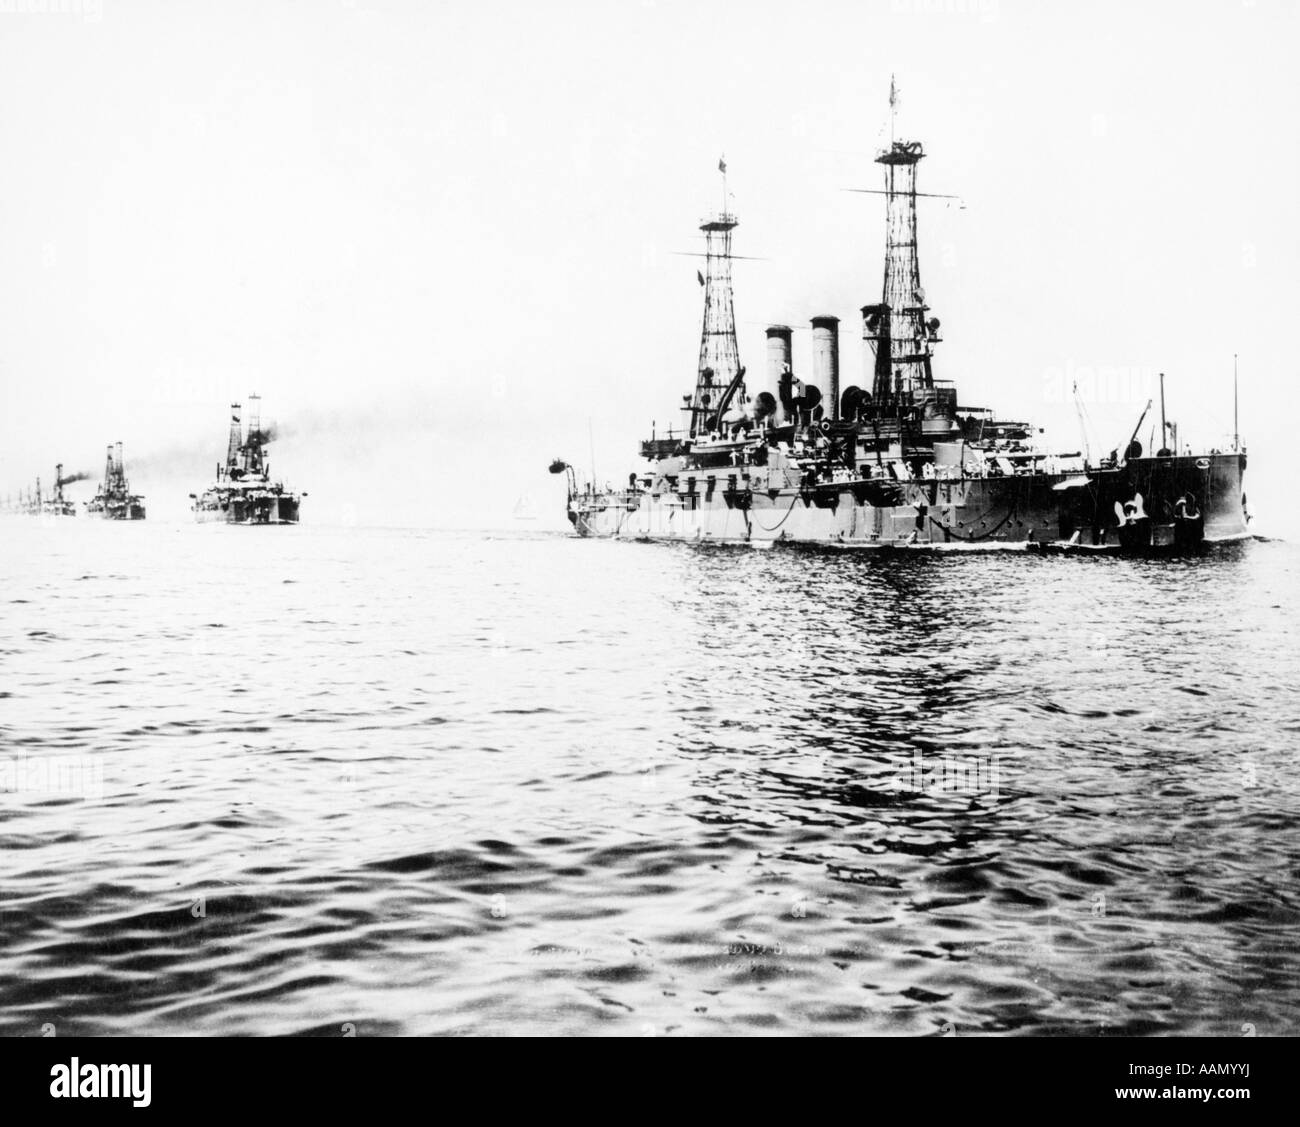 1909 GREAT WHITE FLEET US NAVY USS SHIP CONNECTICUT LEADING NORTH ATLANTIC FLEET OFF VIRGINIA CAPE - Stock Image